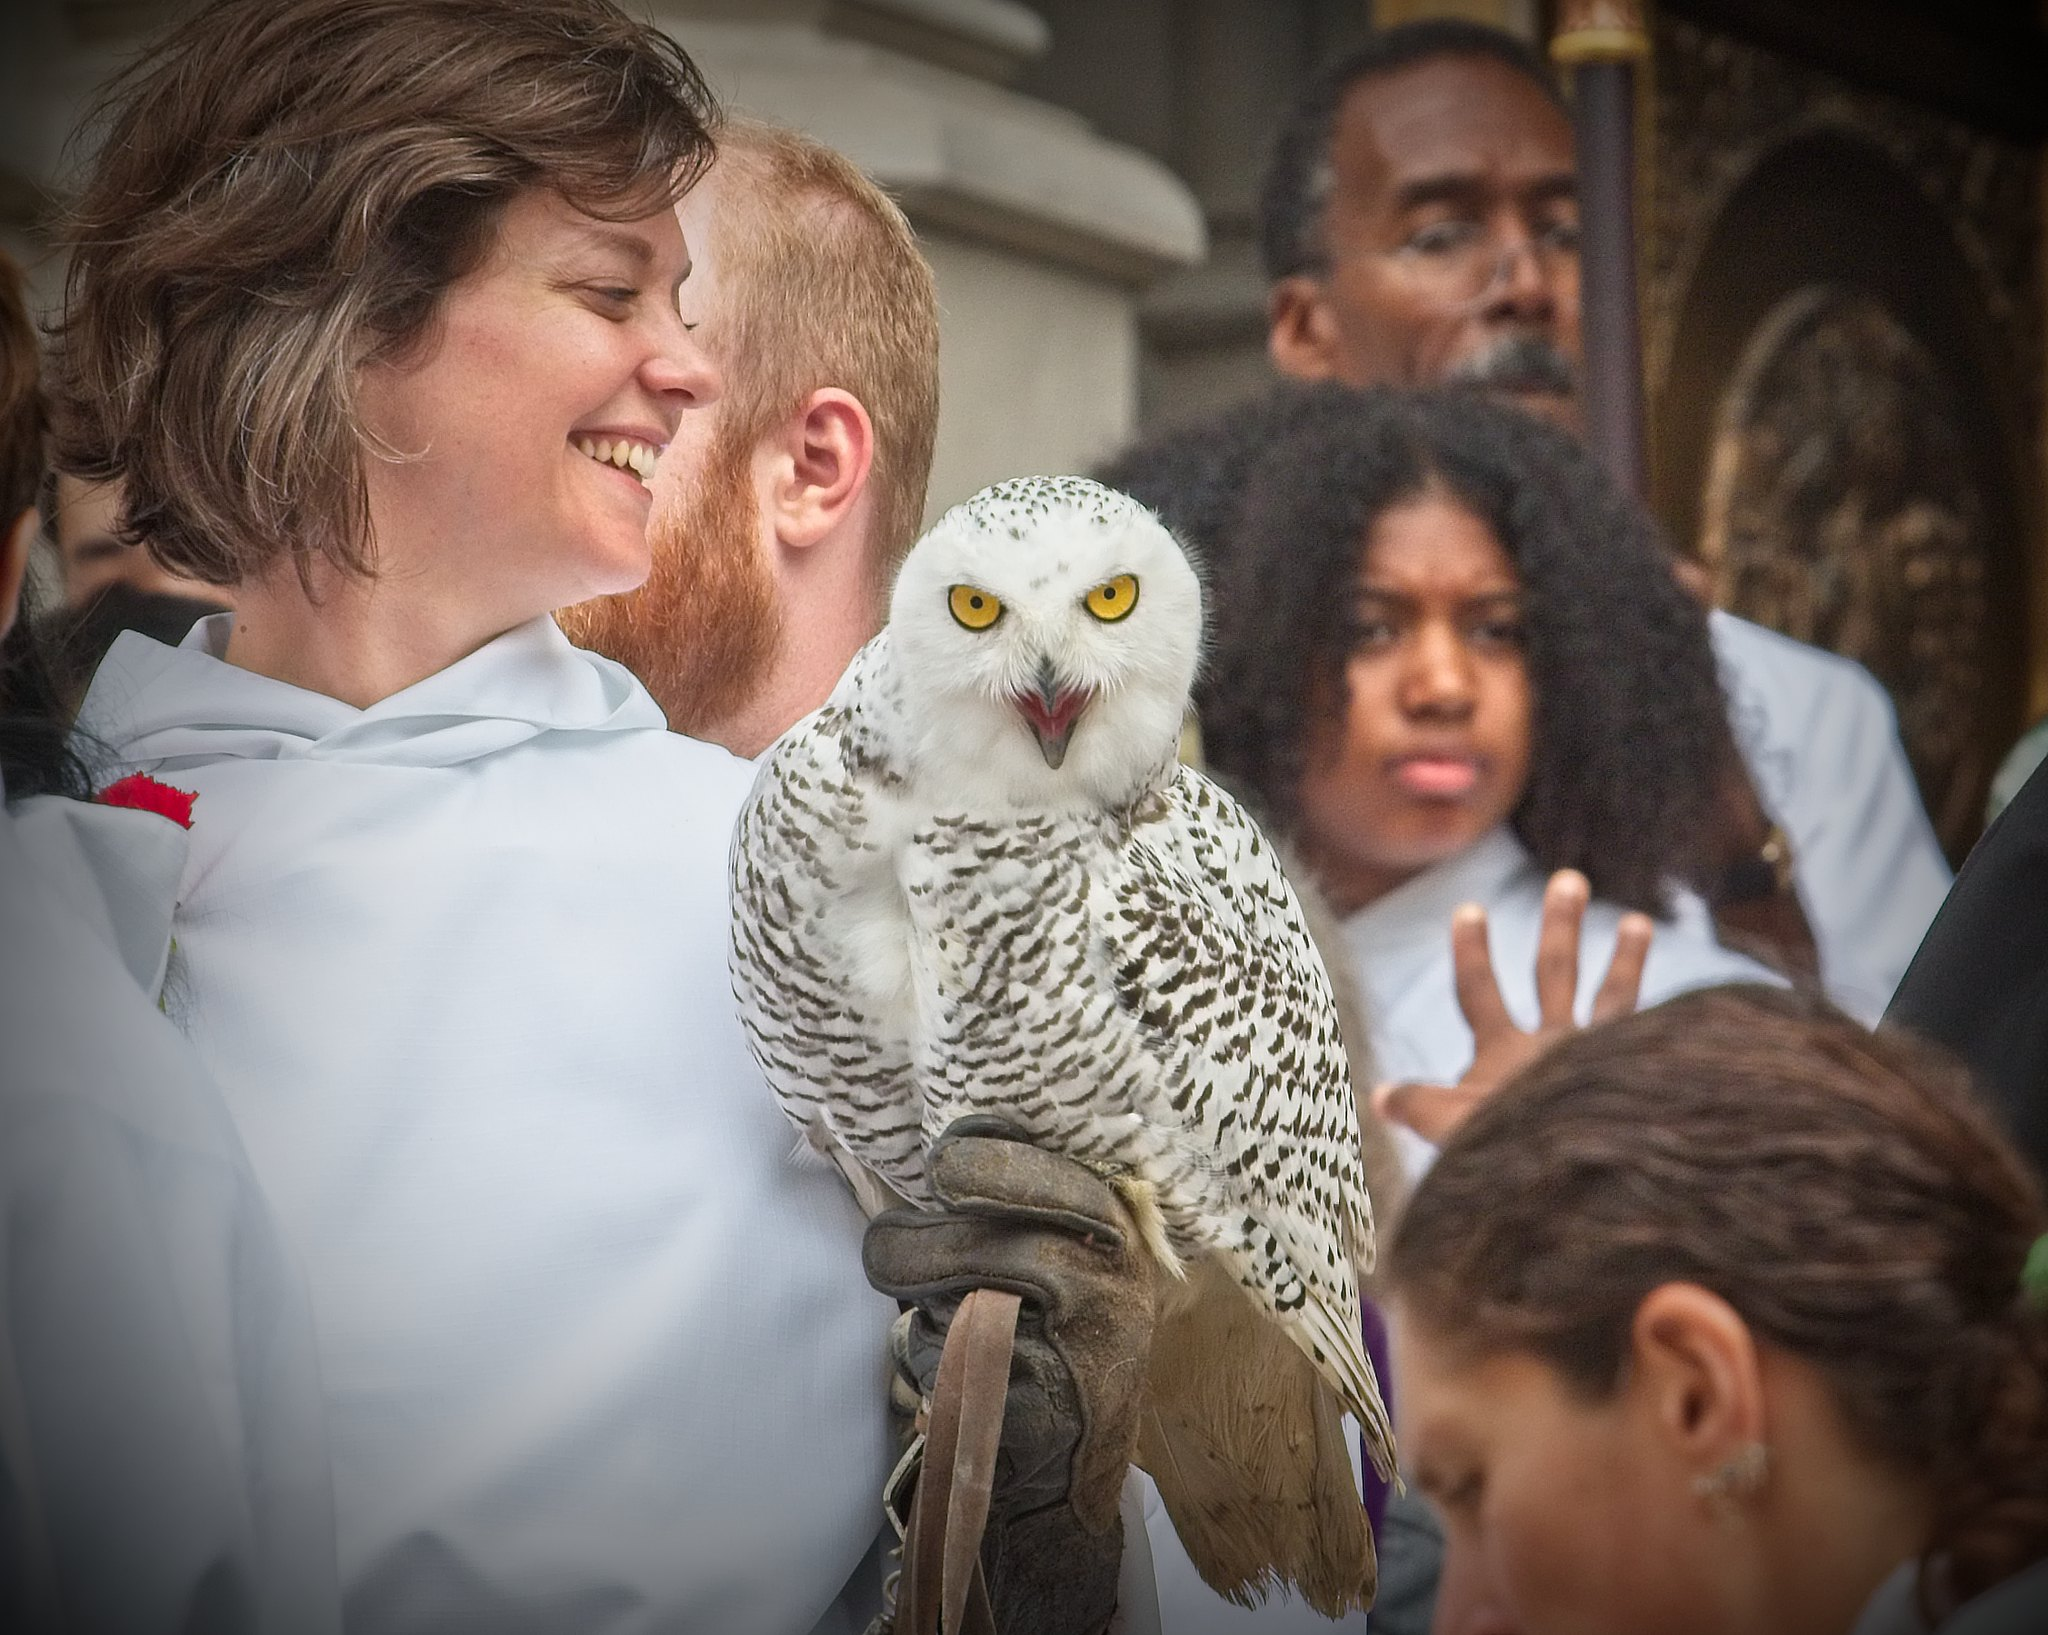 Blessing of the snowy owl